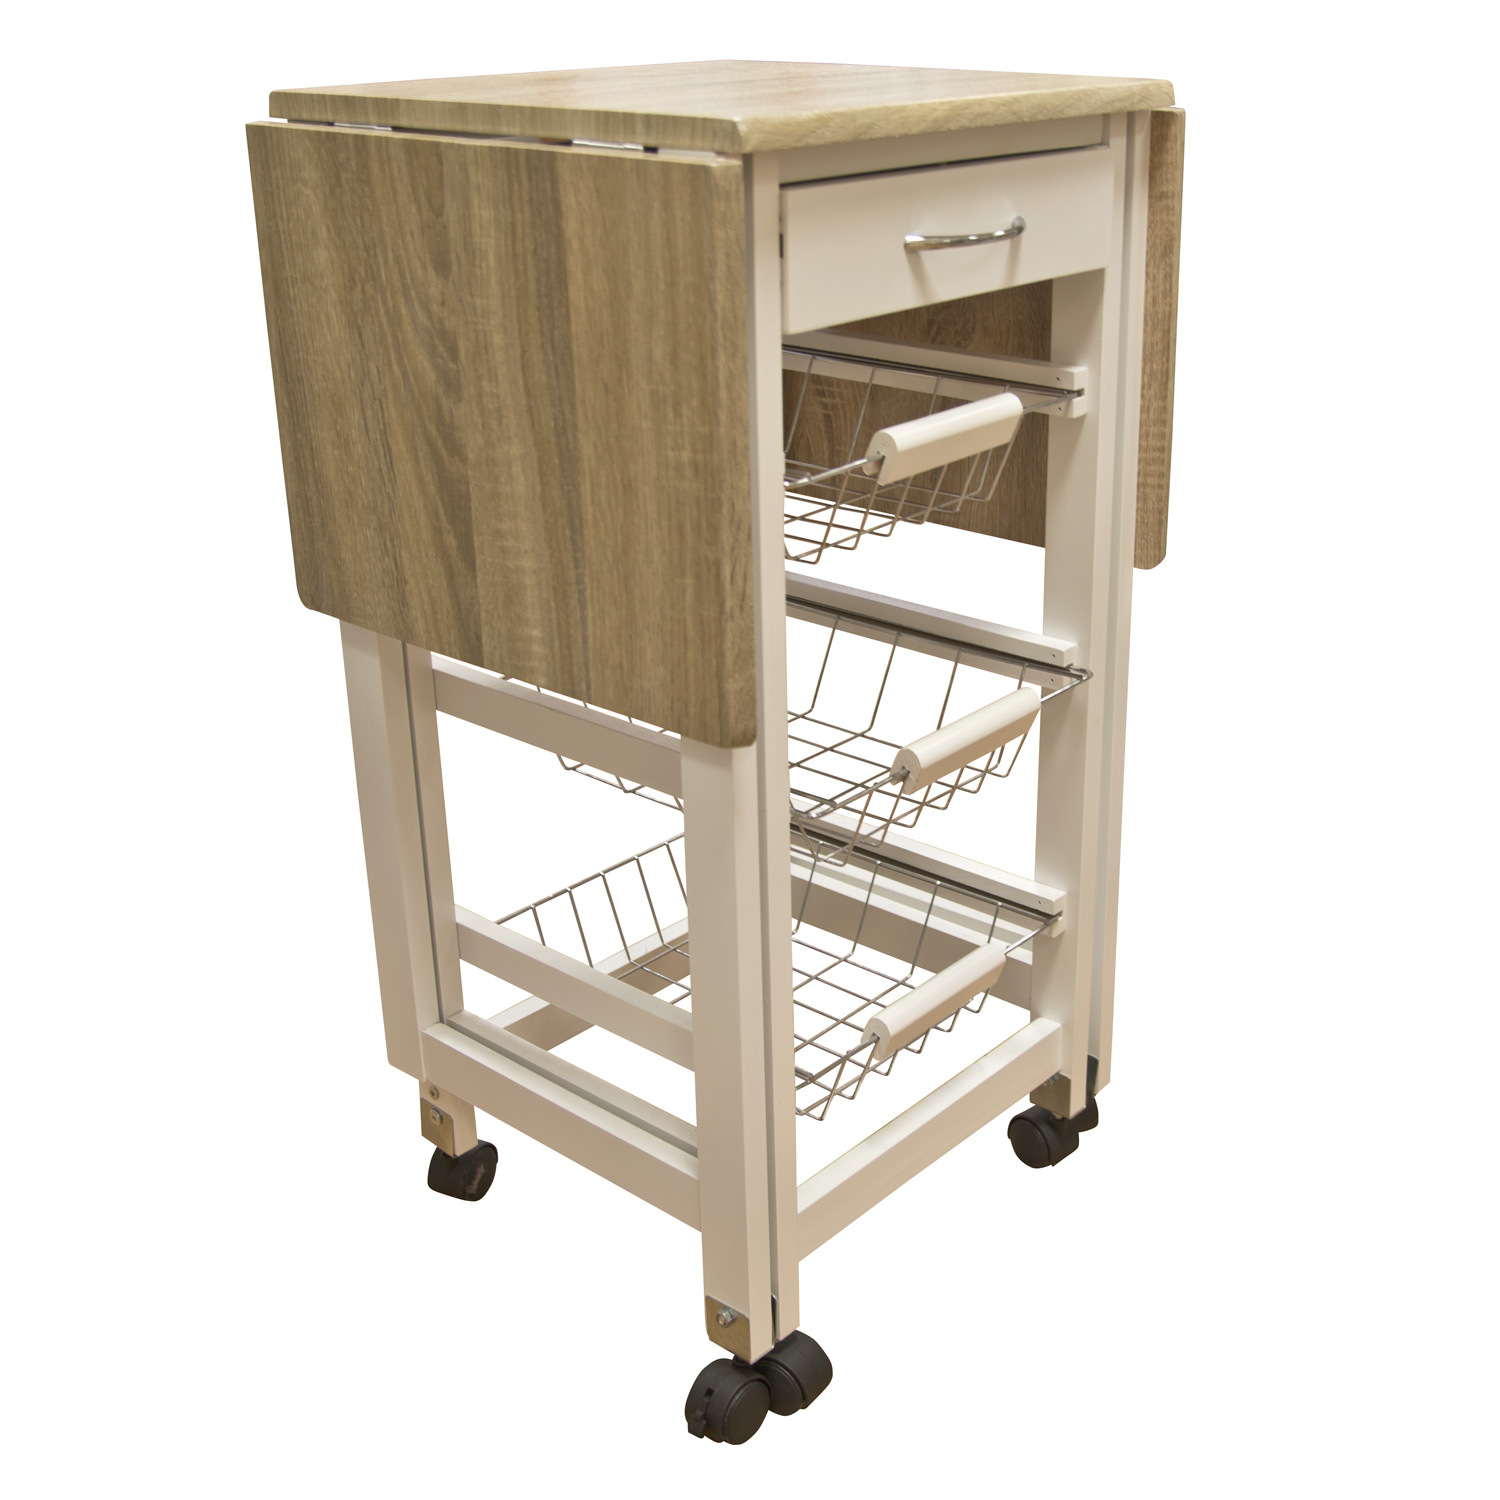 Image of Expanding Kitchen Trolley